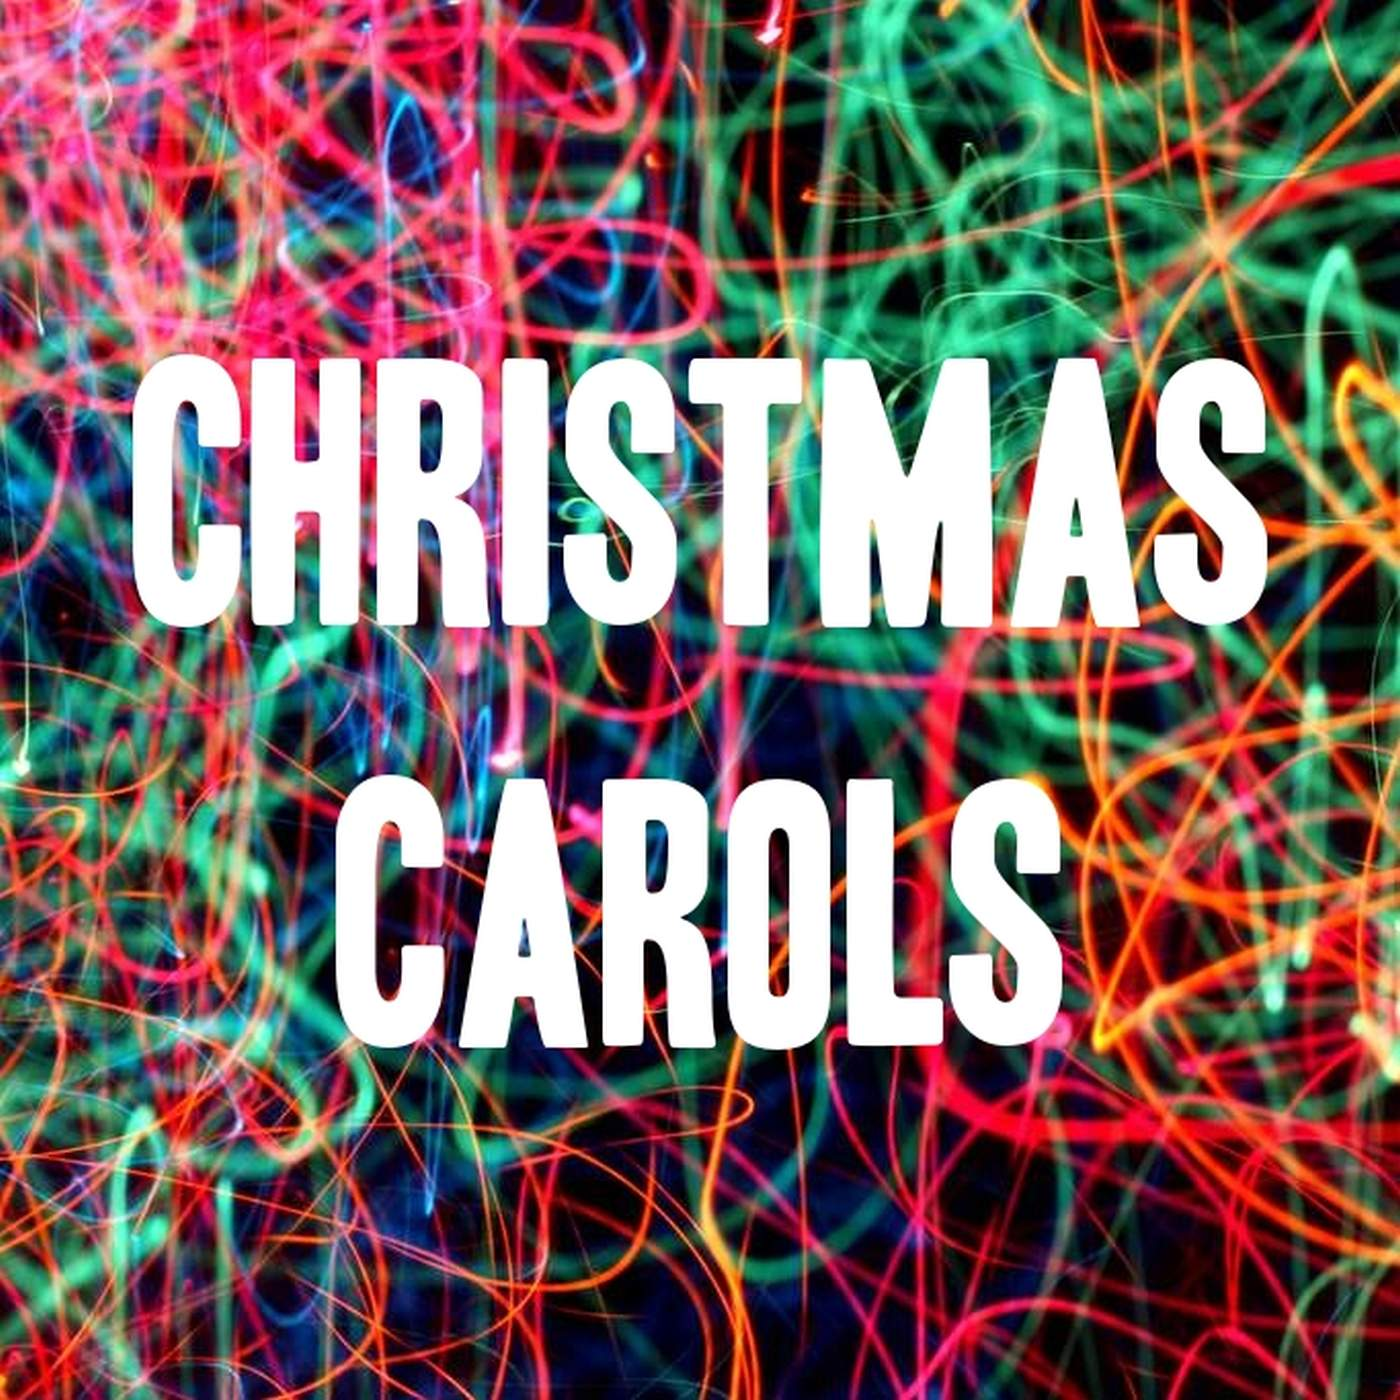 carols – Songs of Hope